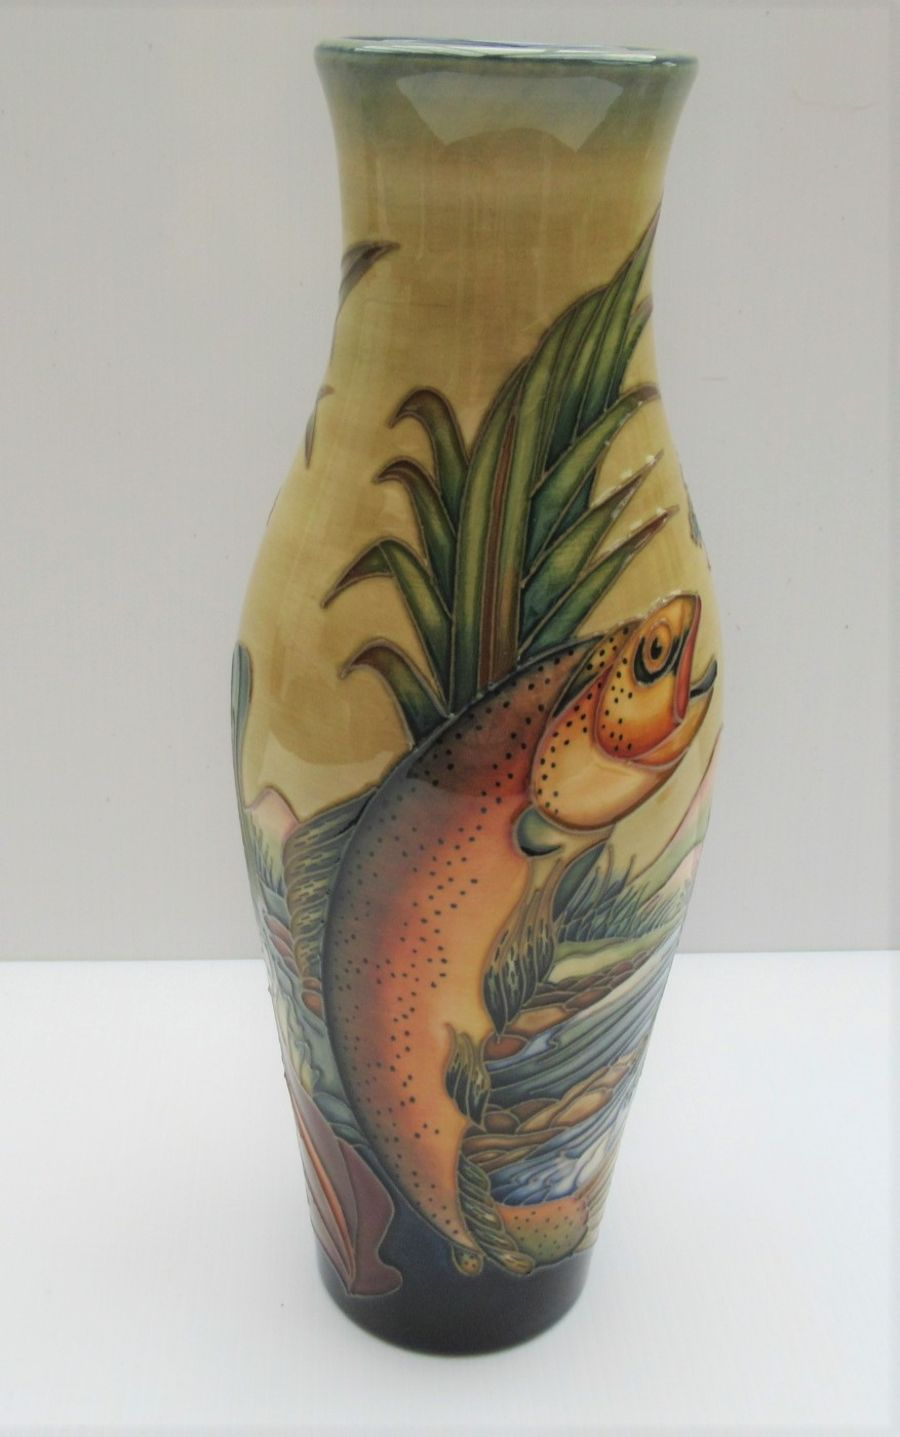 A Moorcroft Trout Vase by Philip Gibson, 1999